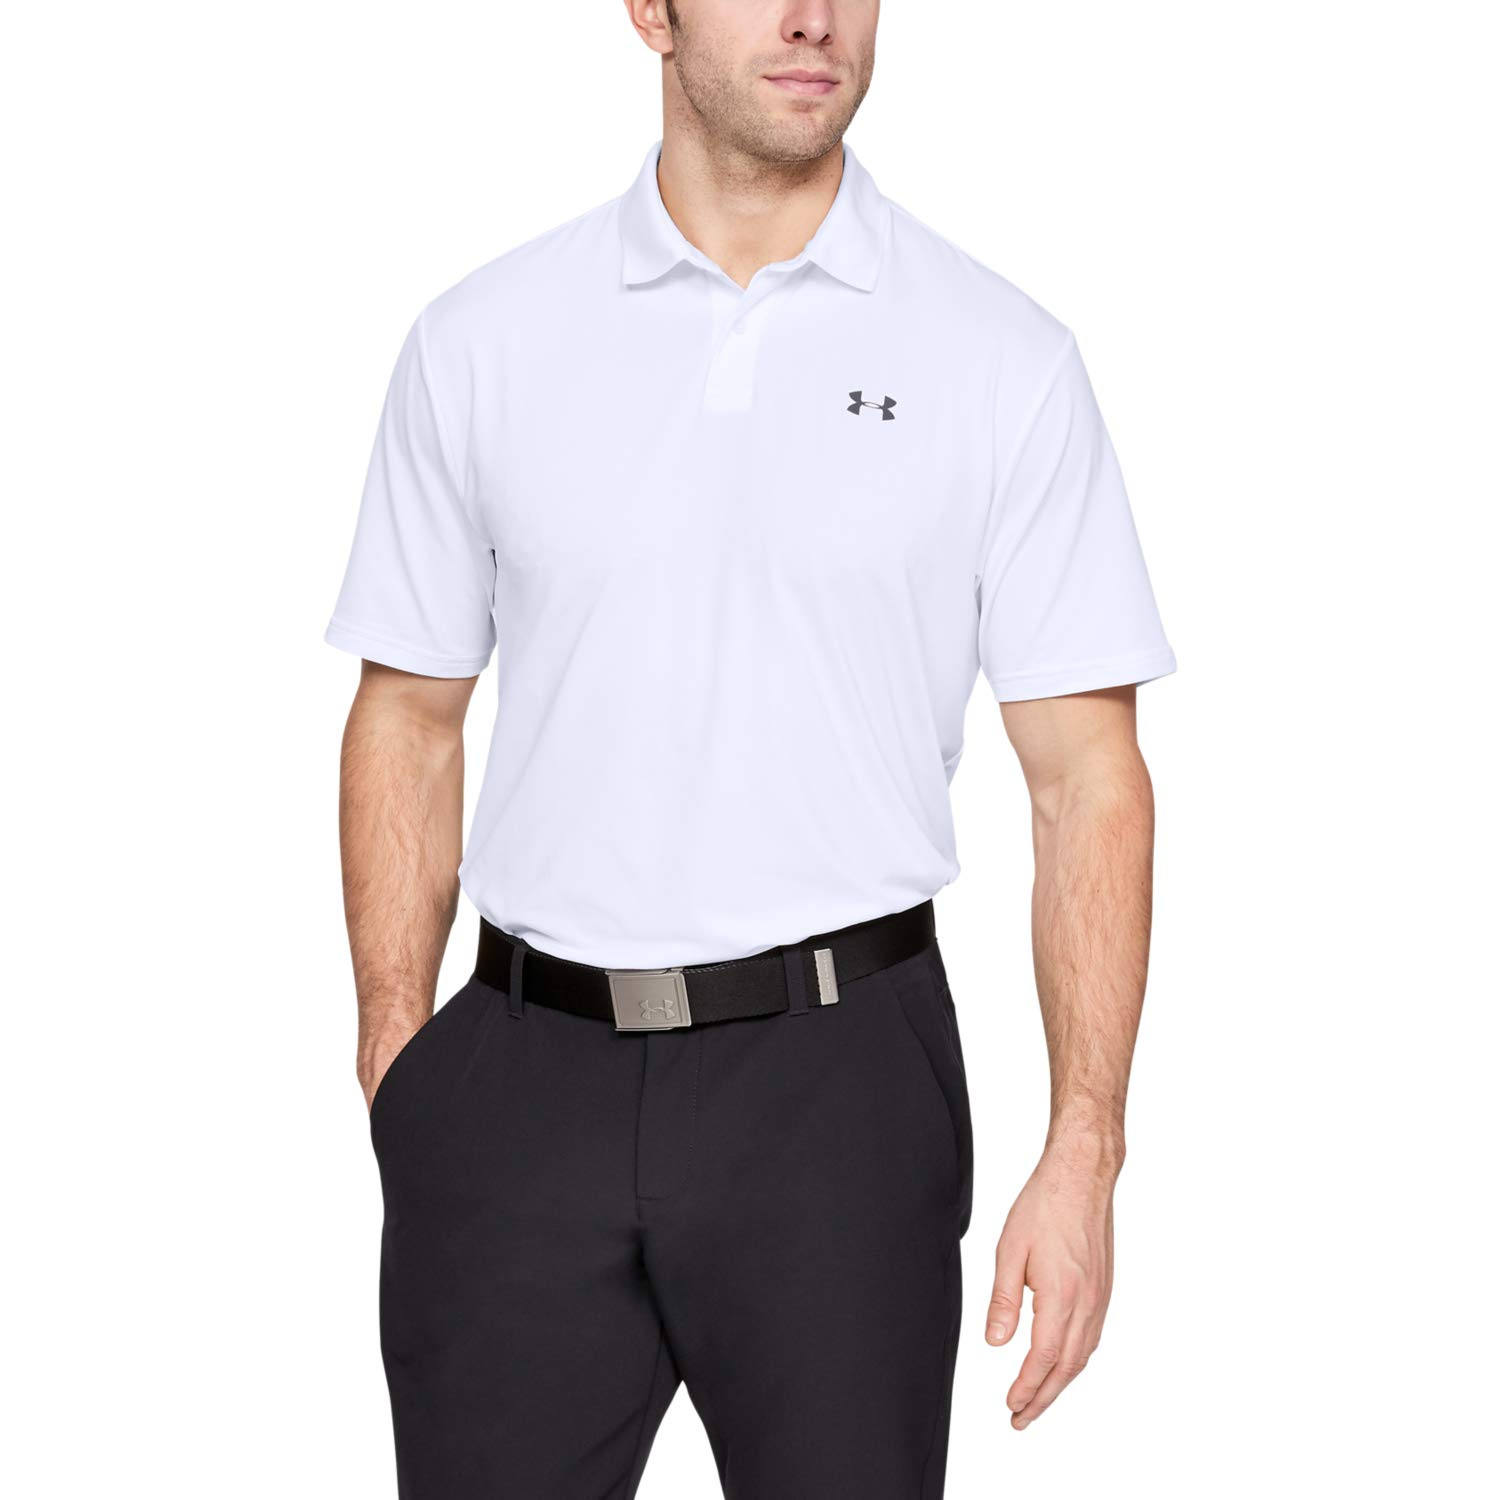 Under Armour Men's Performance Polo 2.0, White//Pitch Gray, 3X-Large